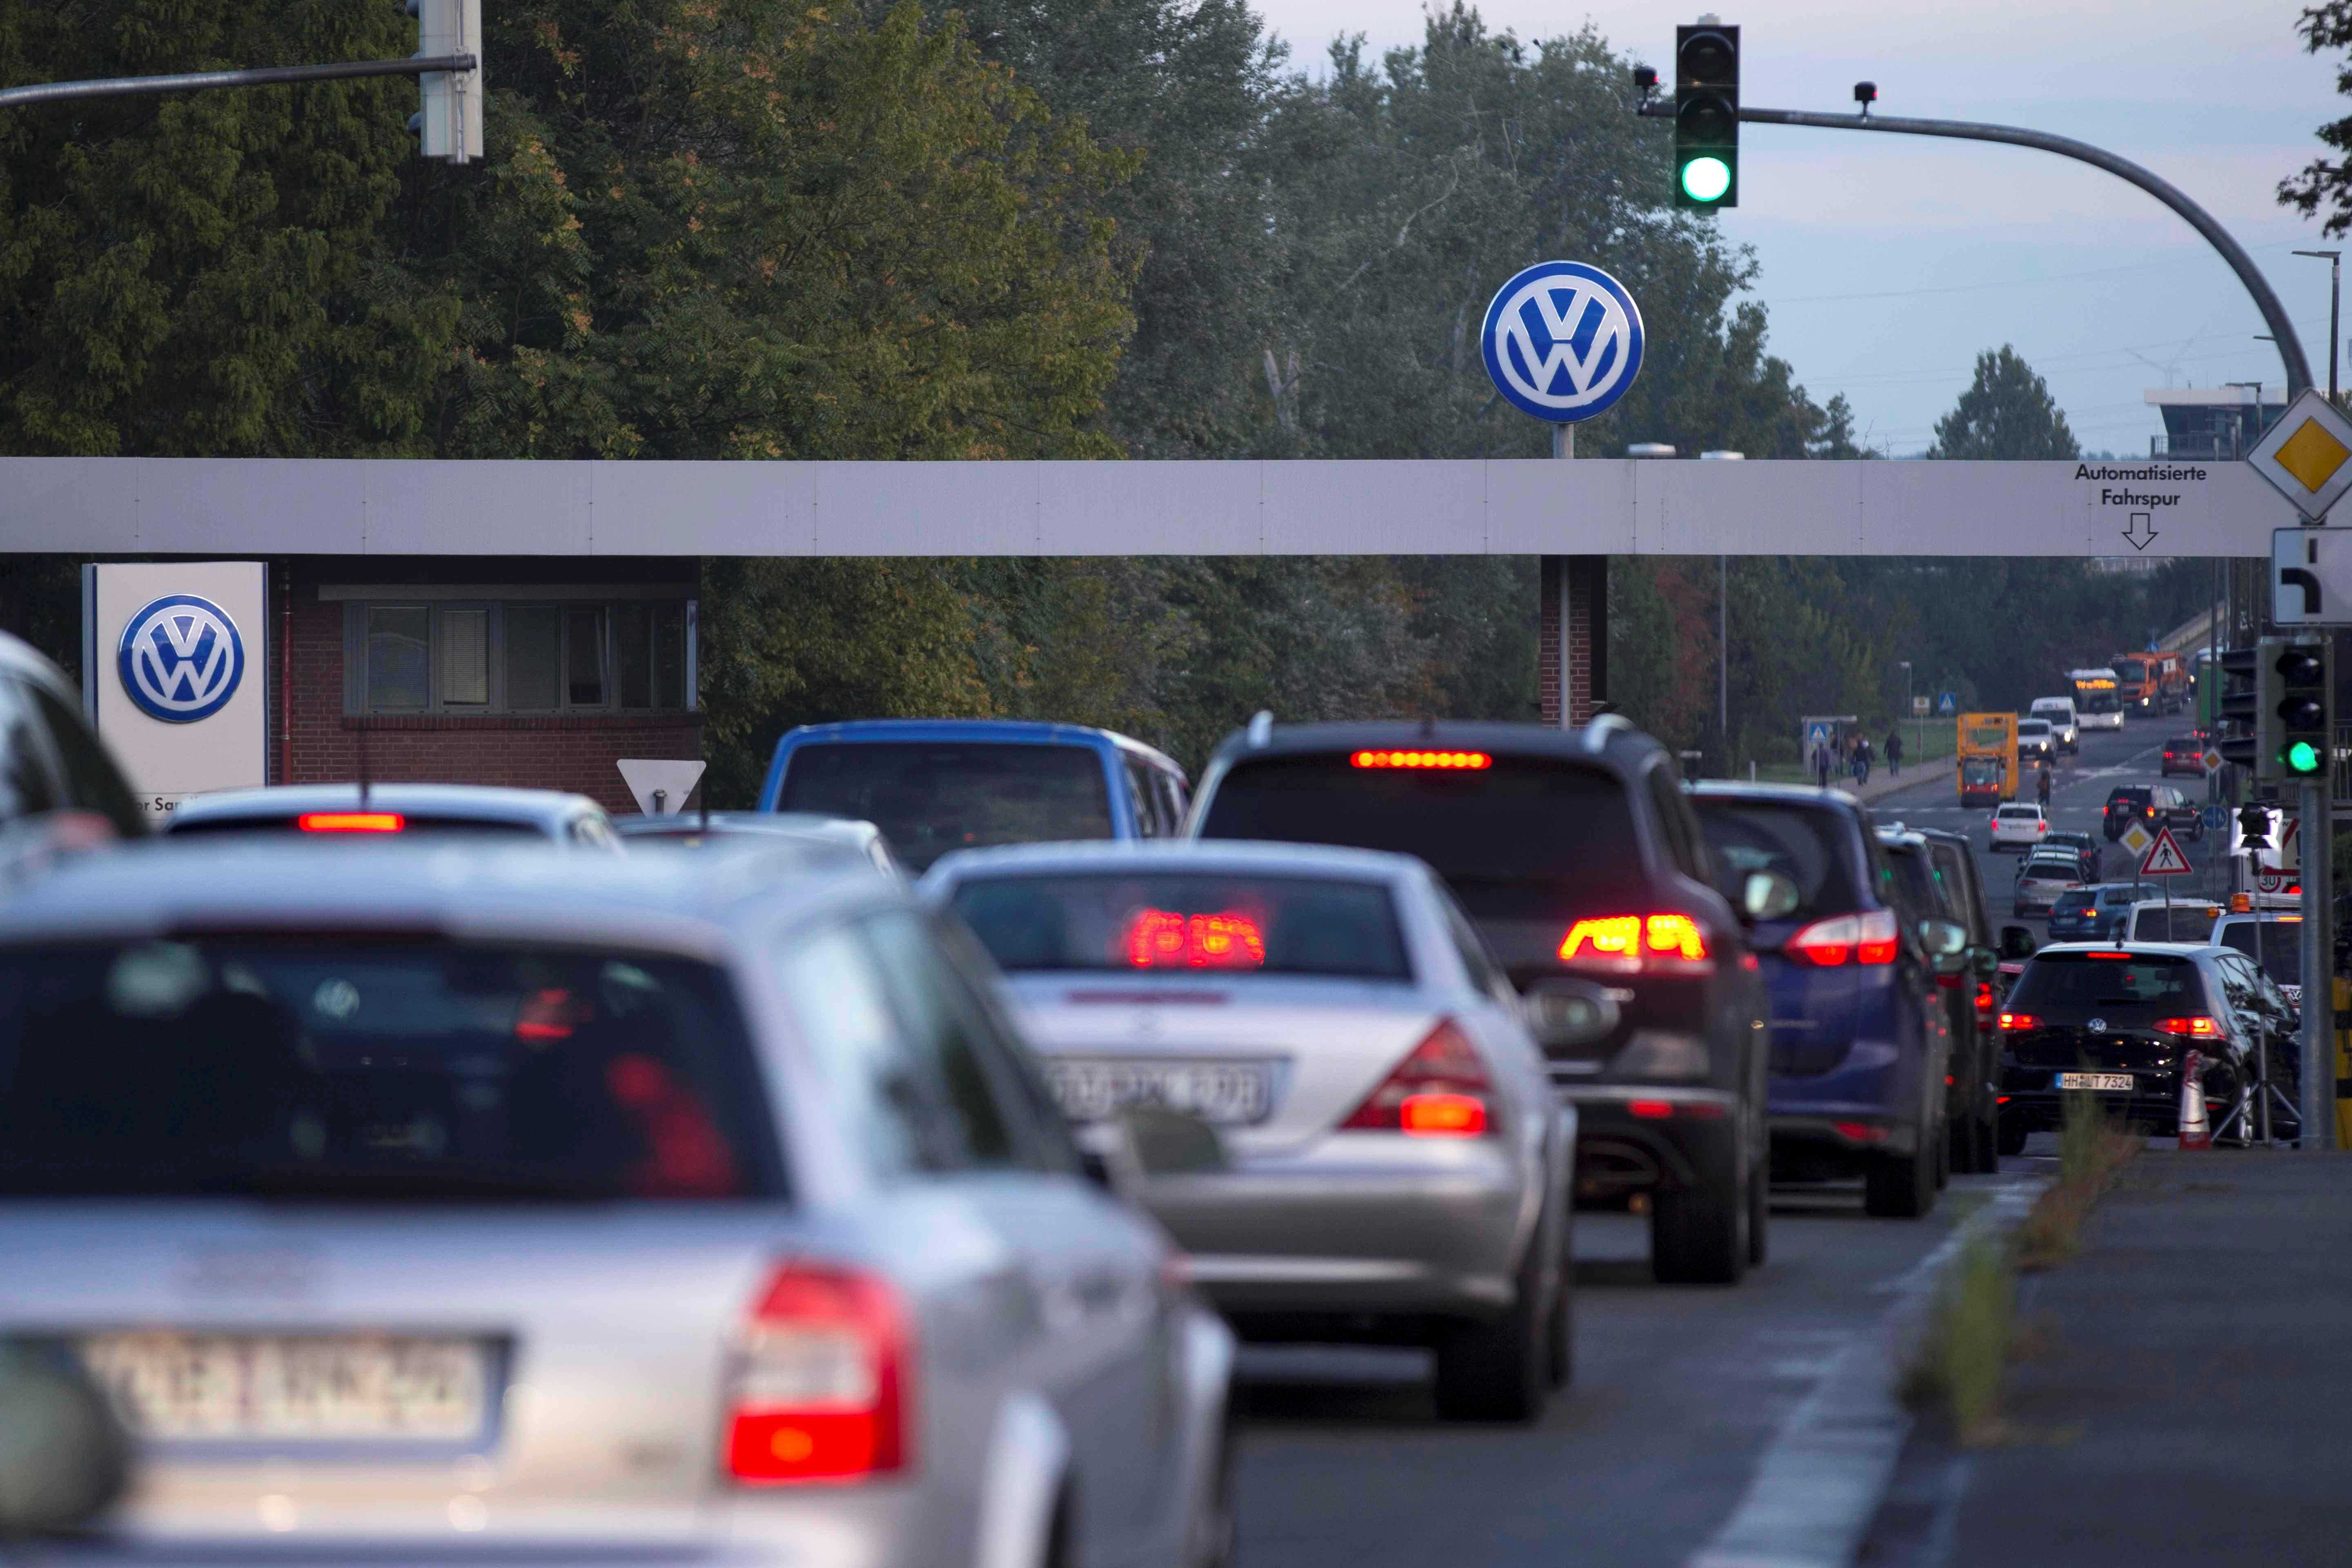 More than 400,000 German jobs at risk in switch to electric cars:...